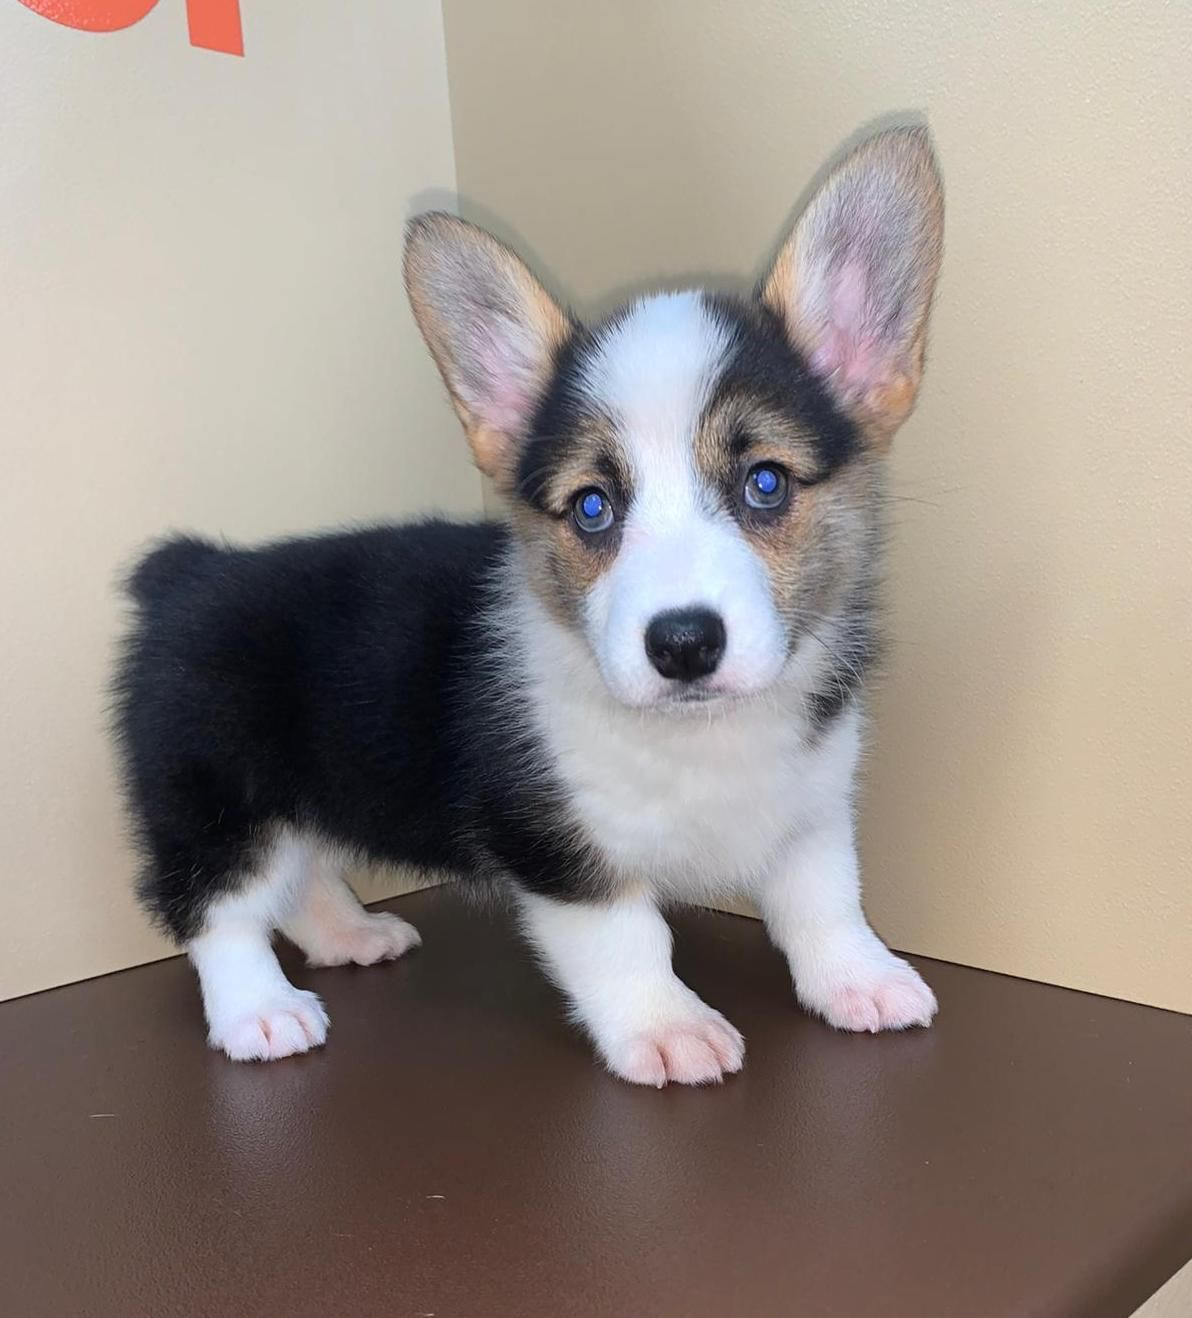 Puppies For Sale in 2020 Puppies, Puppy eyes,